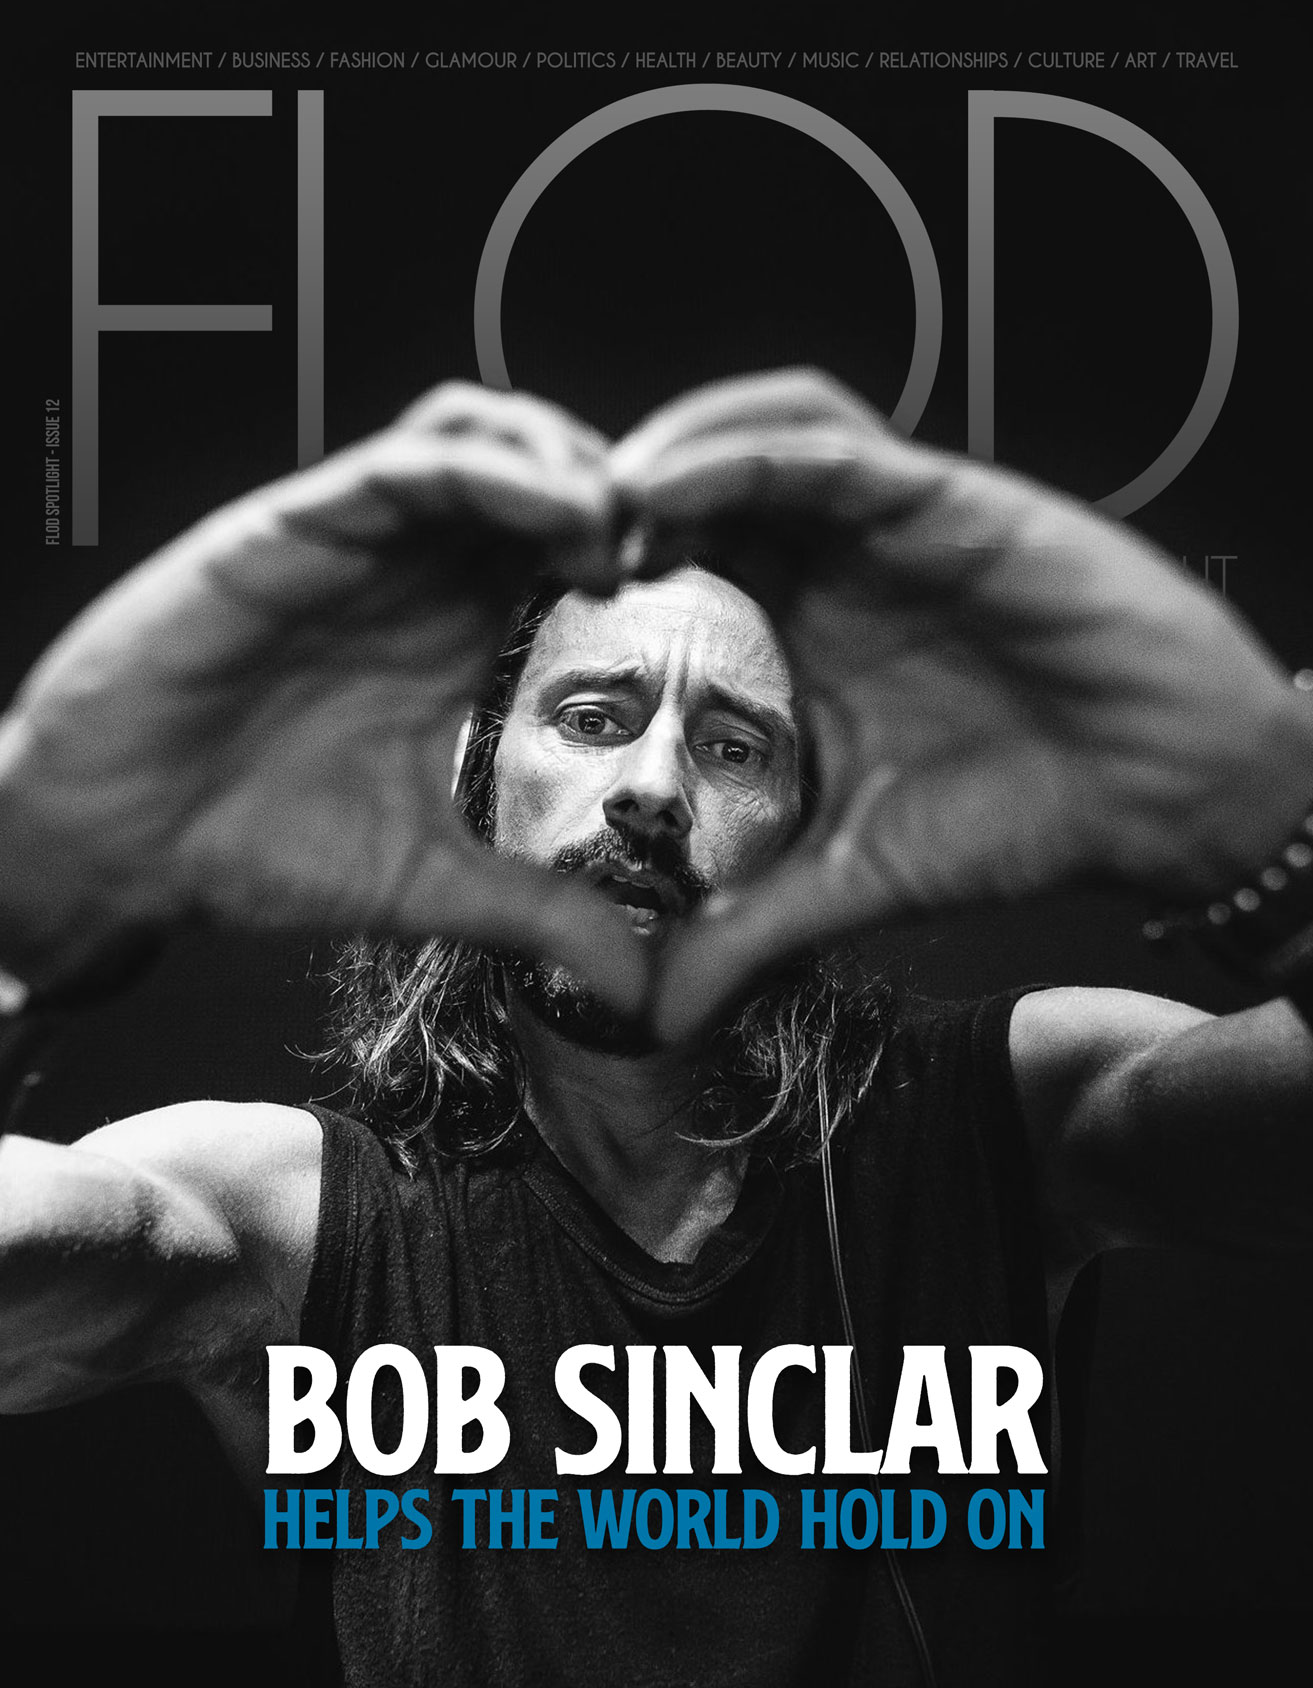 Issue 12 – Bob Sinclar Helps The World Hold On